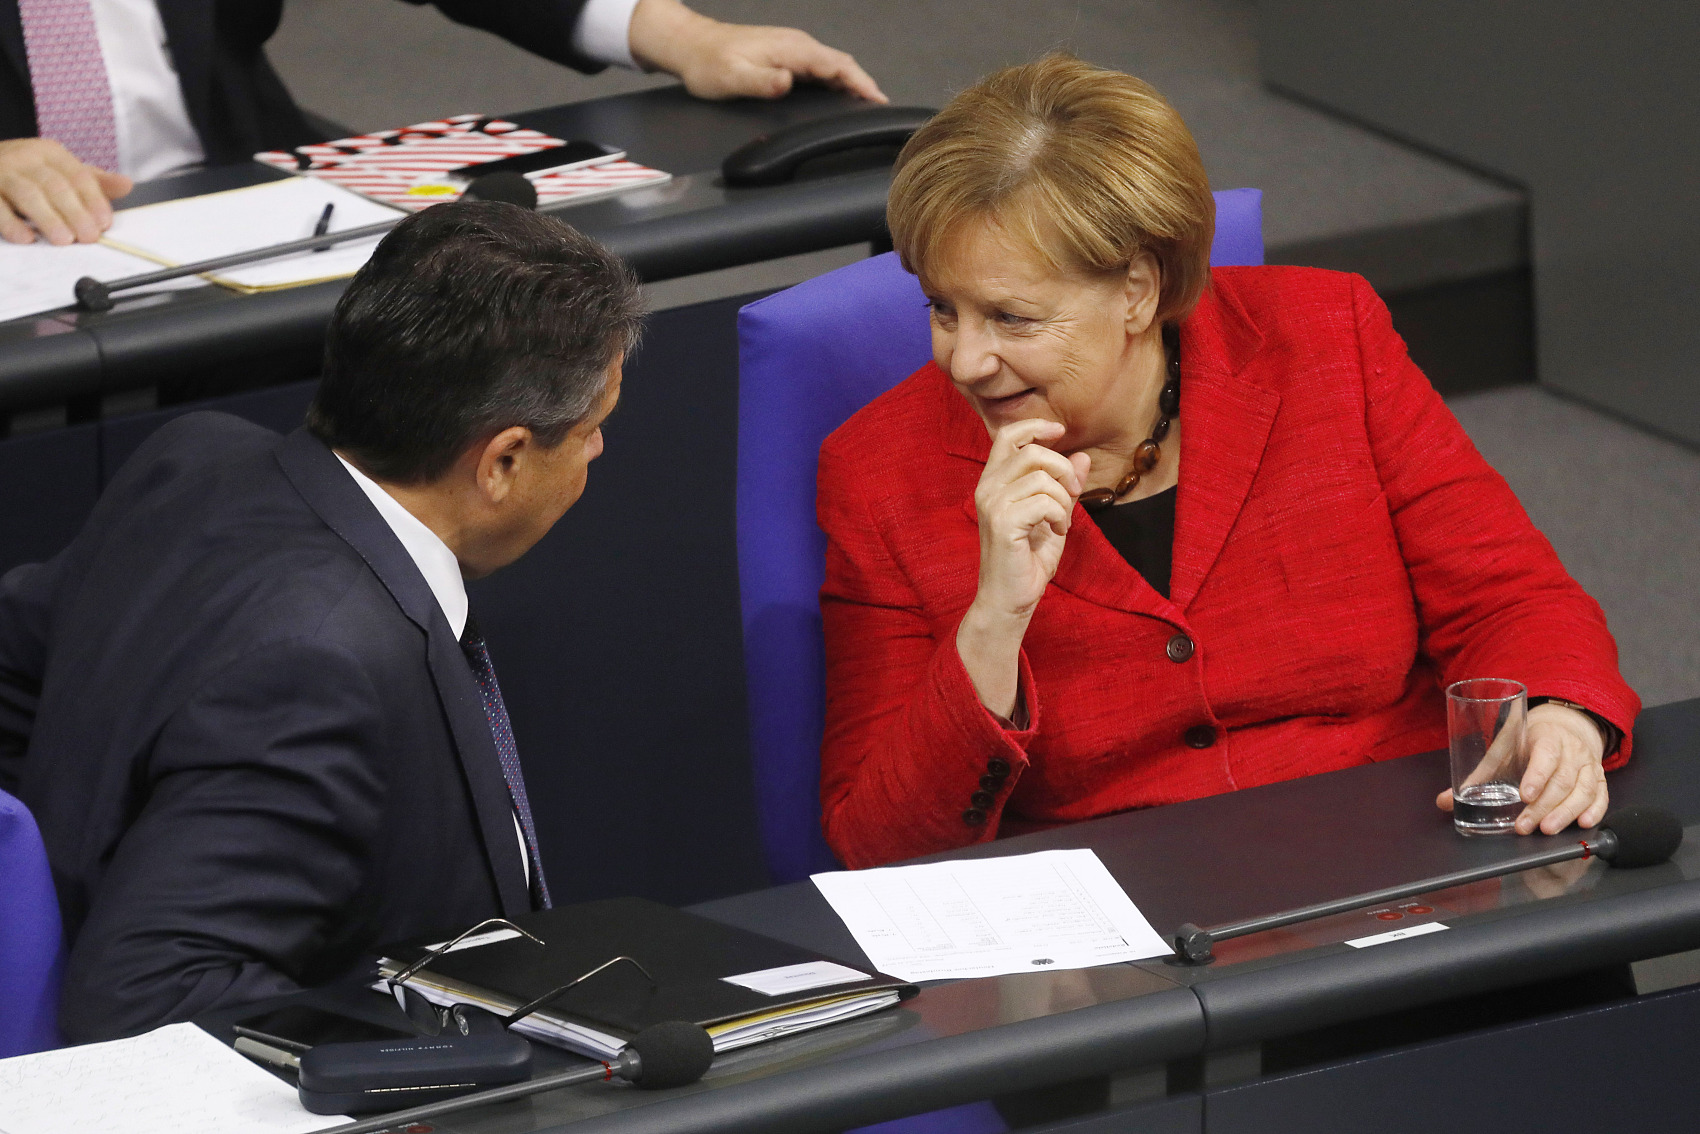 No coalition speaks uncertainty for Germany